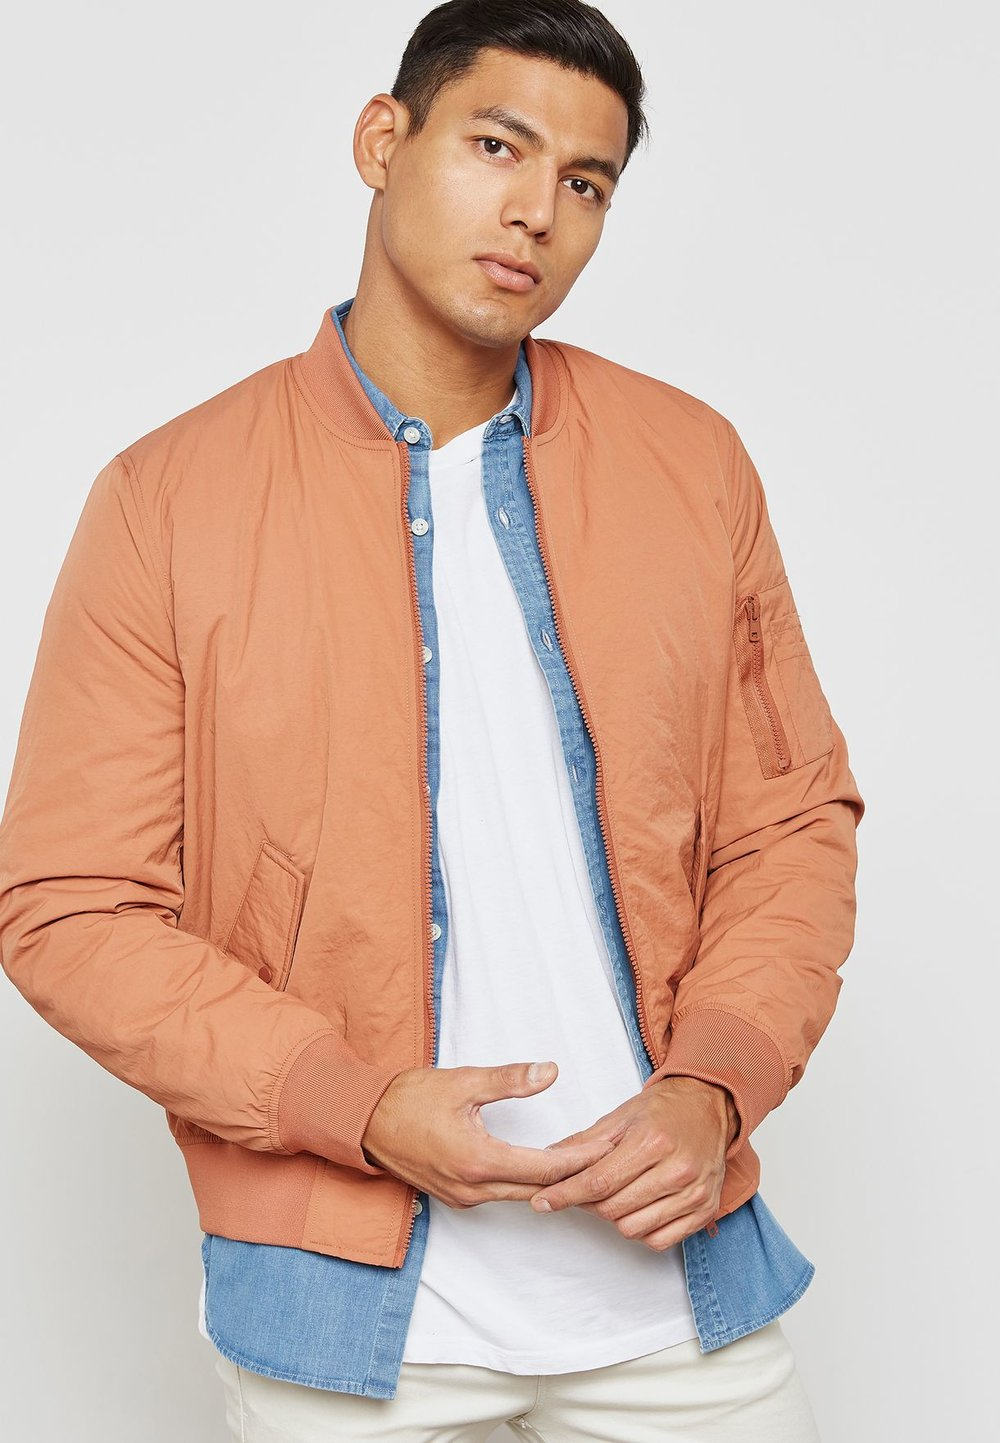 New Look  bomber jacket  199aed/sar